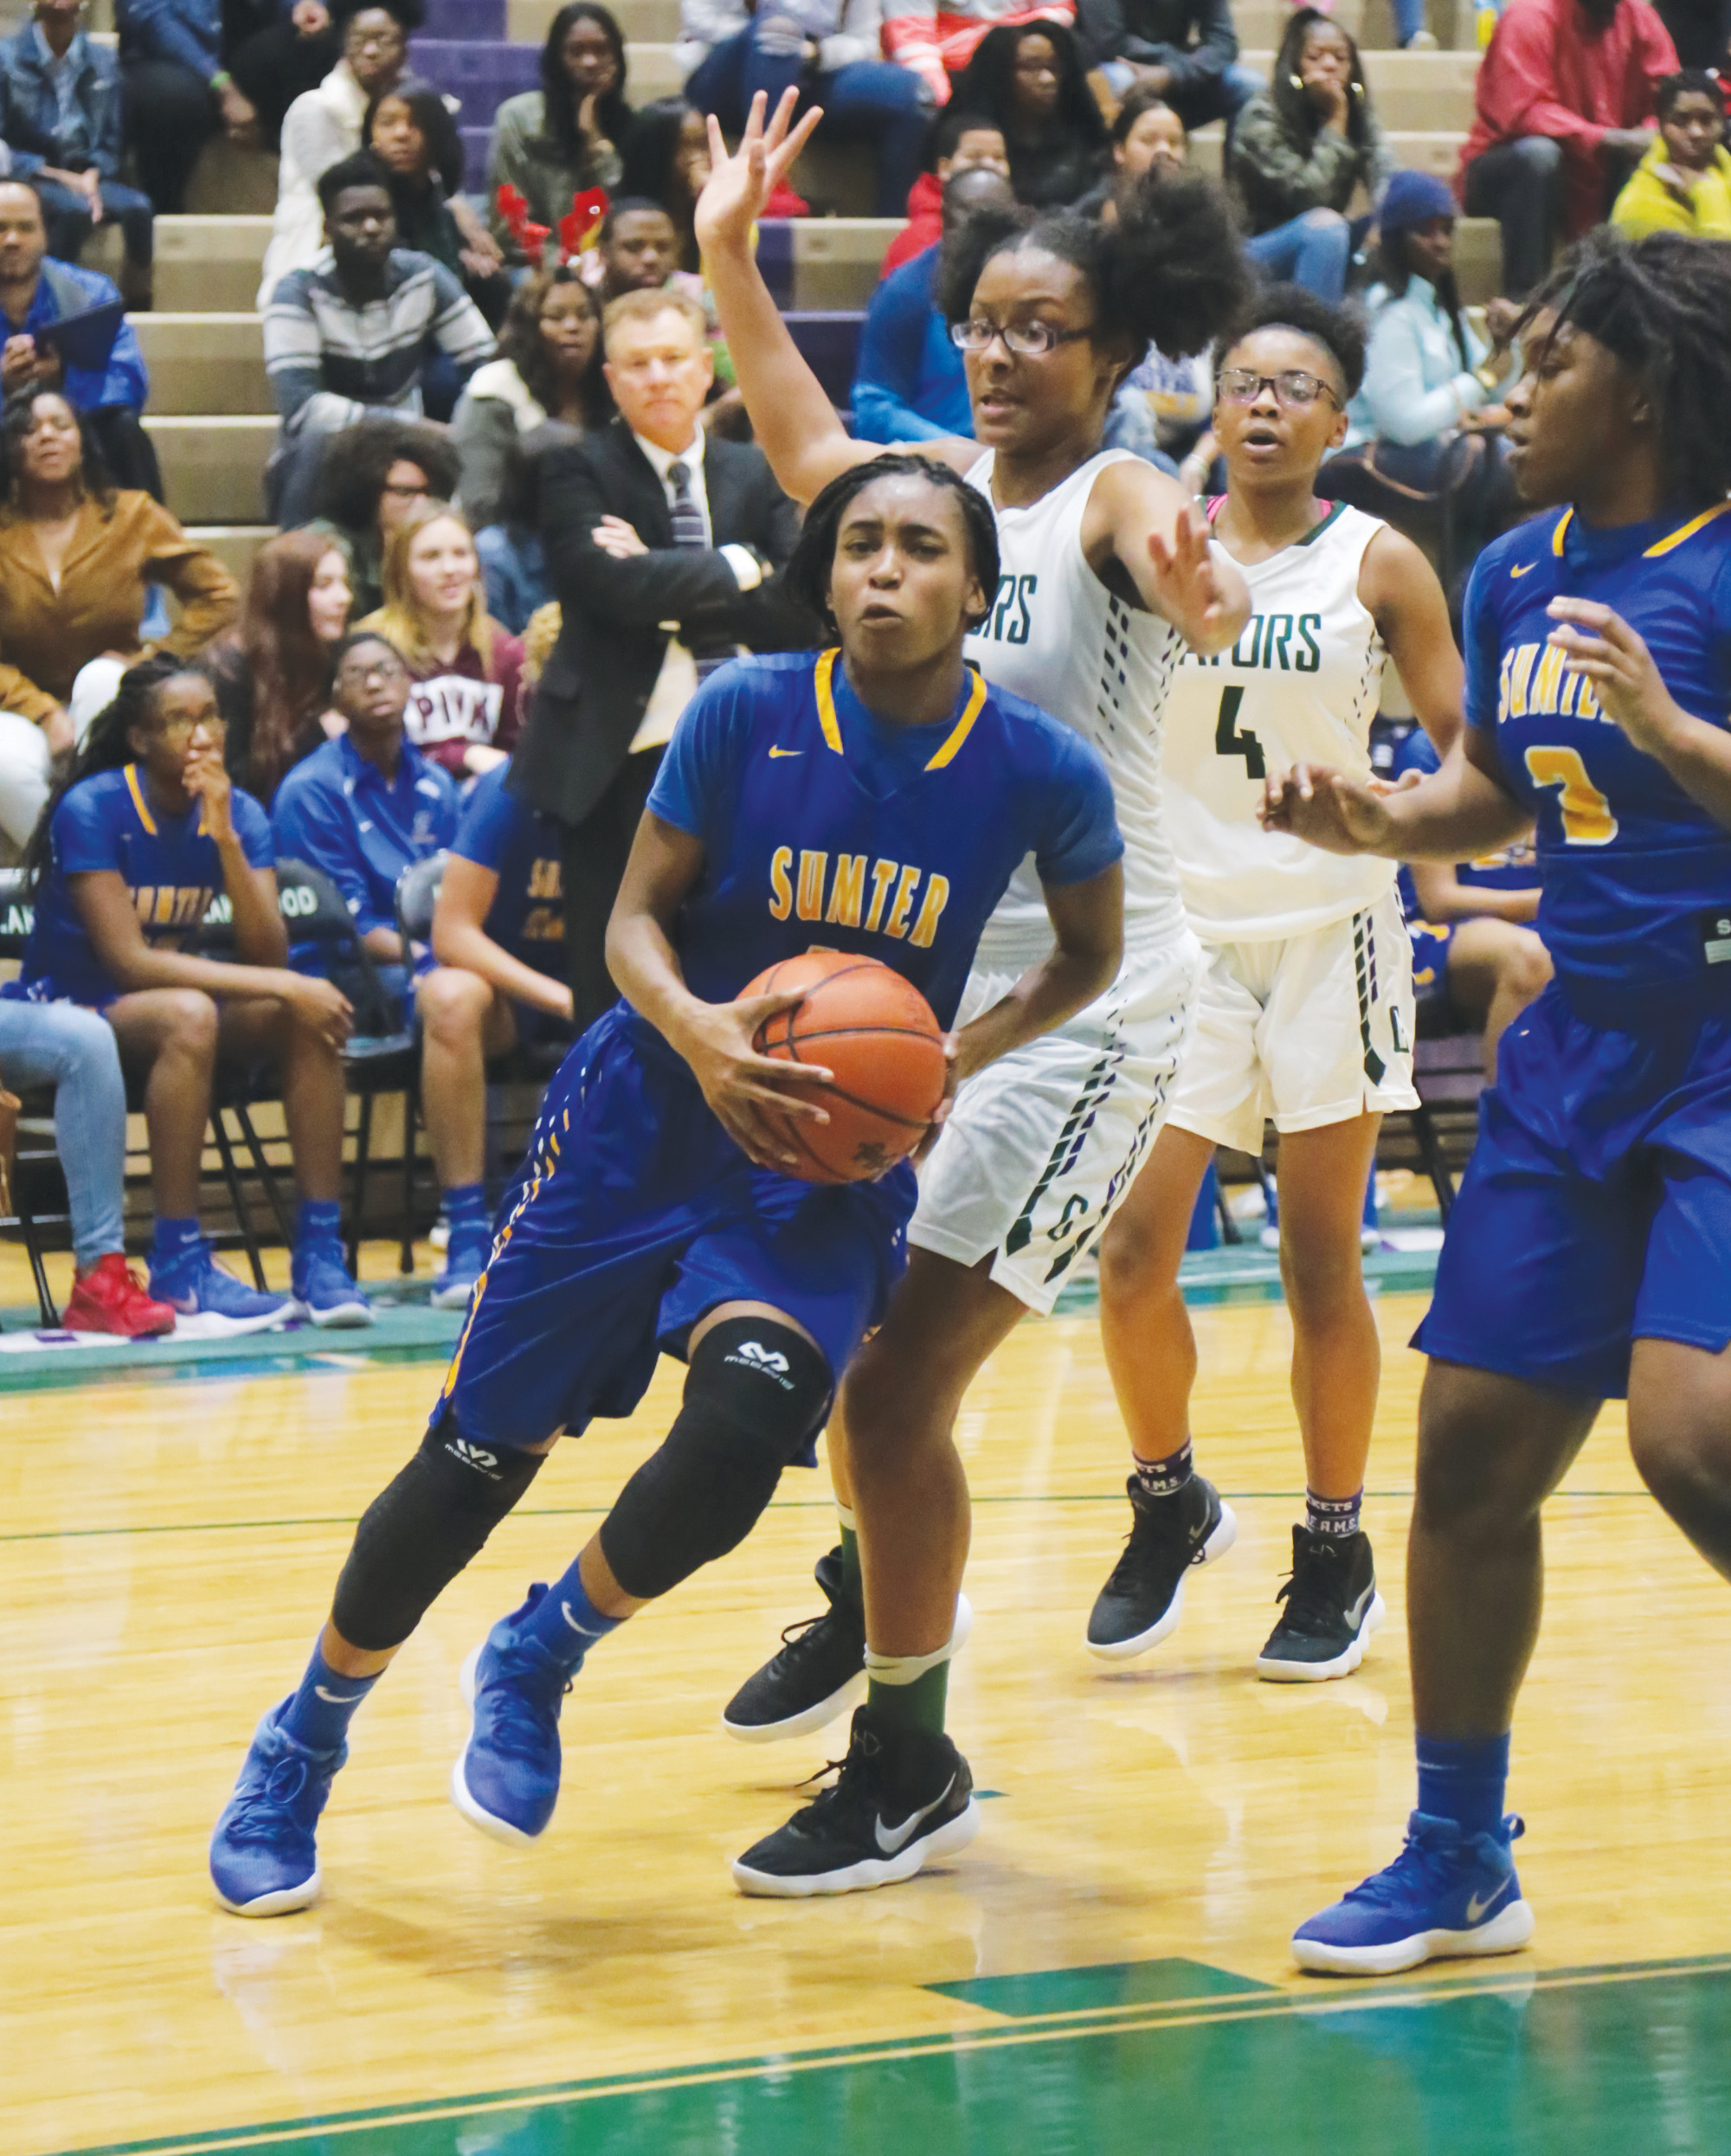 Sumter's Nina Edlow (11) drives to the basket during the second half of the Lady Gamecocks' 38-30 victory over Lakewood on Friday at The Swamp.